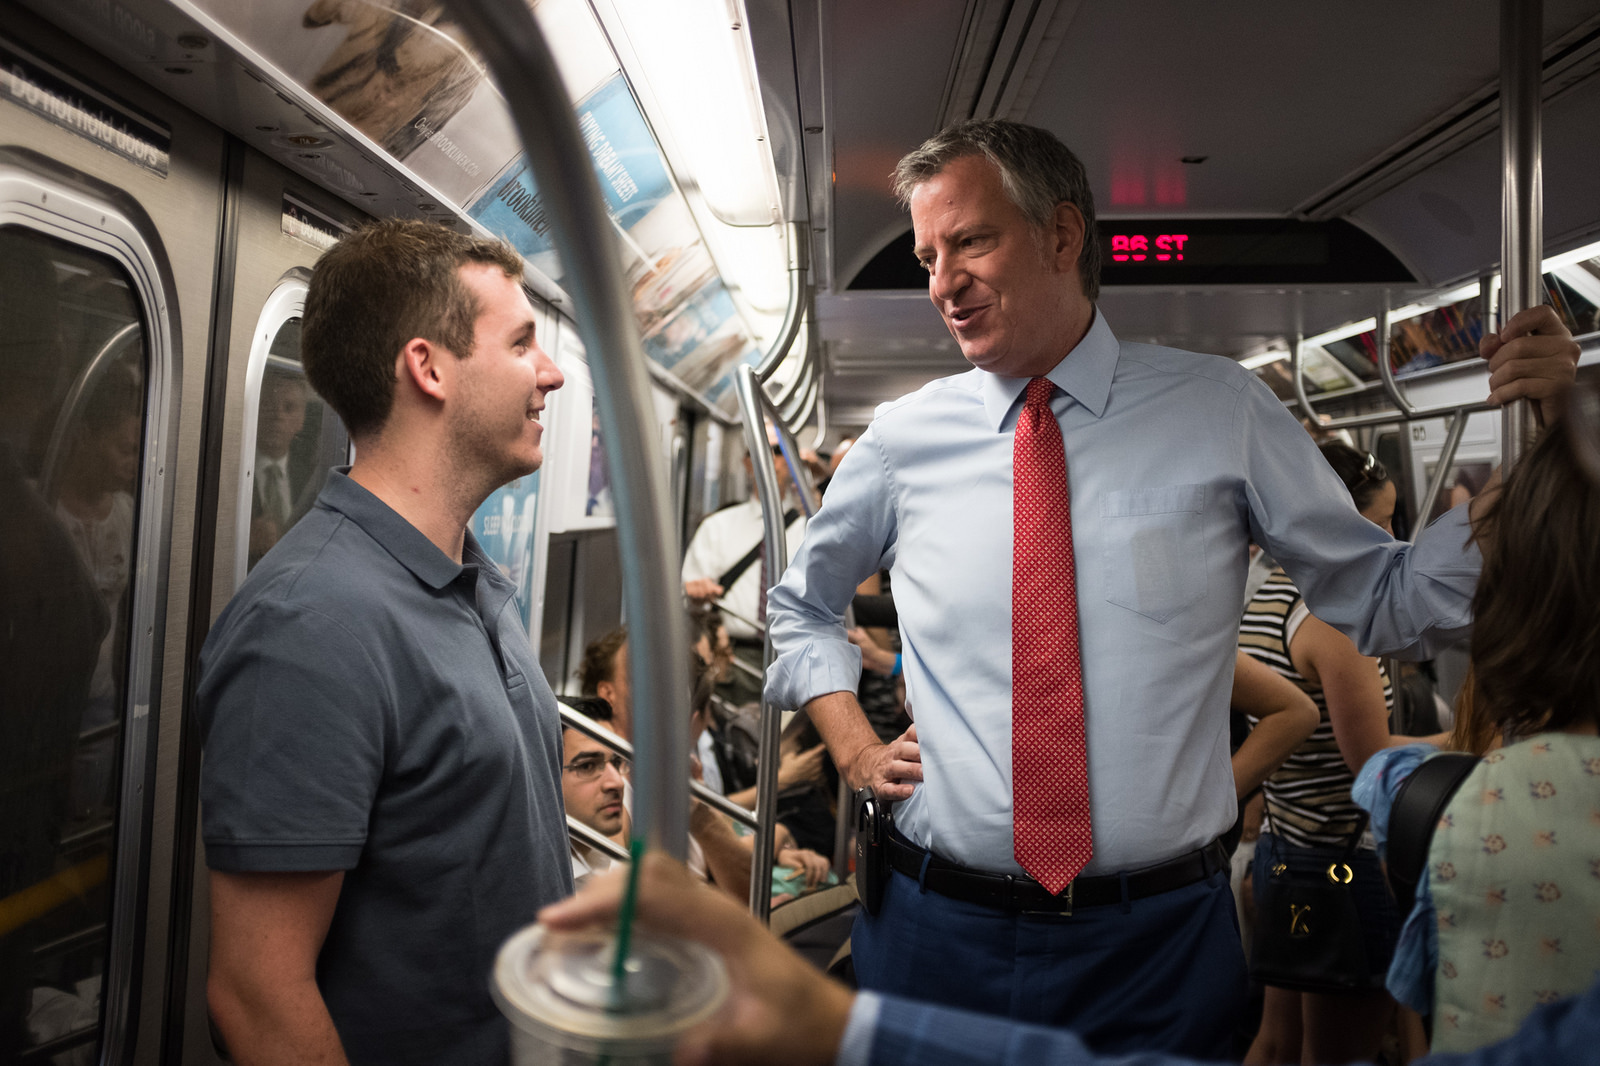 New York City Mayor Bill de Blasio rides the Q Train to Jackson Heights on Friday, July 21st, 2017. Edwin J. Torres/Mayoral Photo Office.